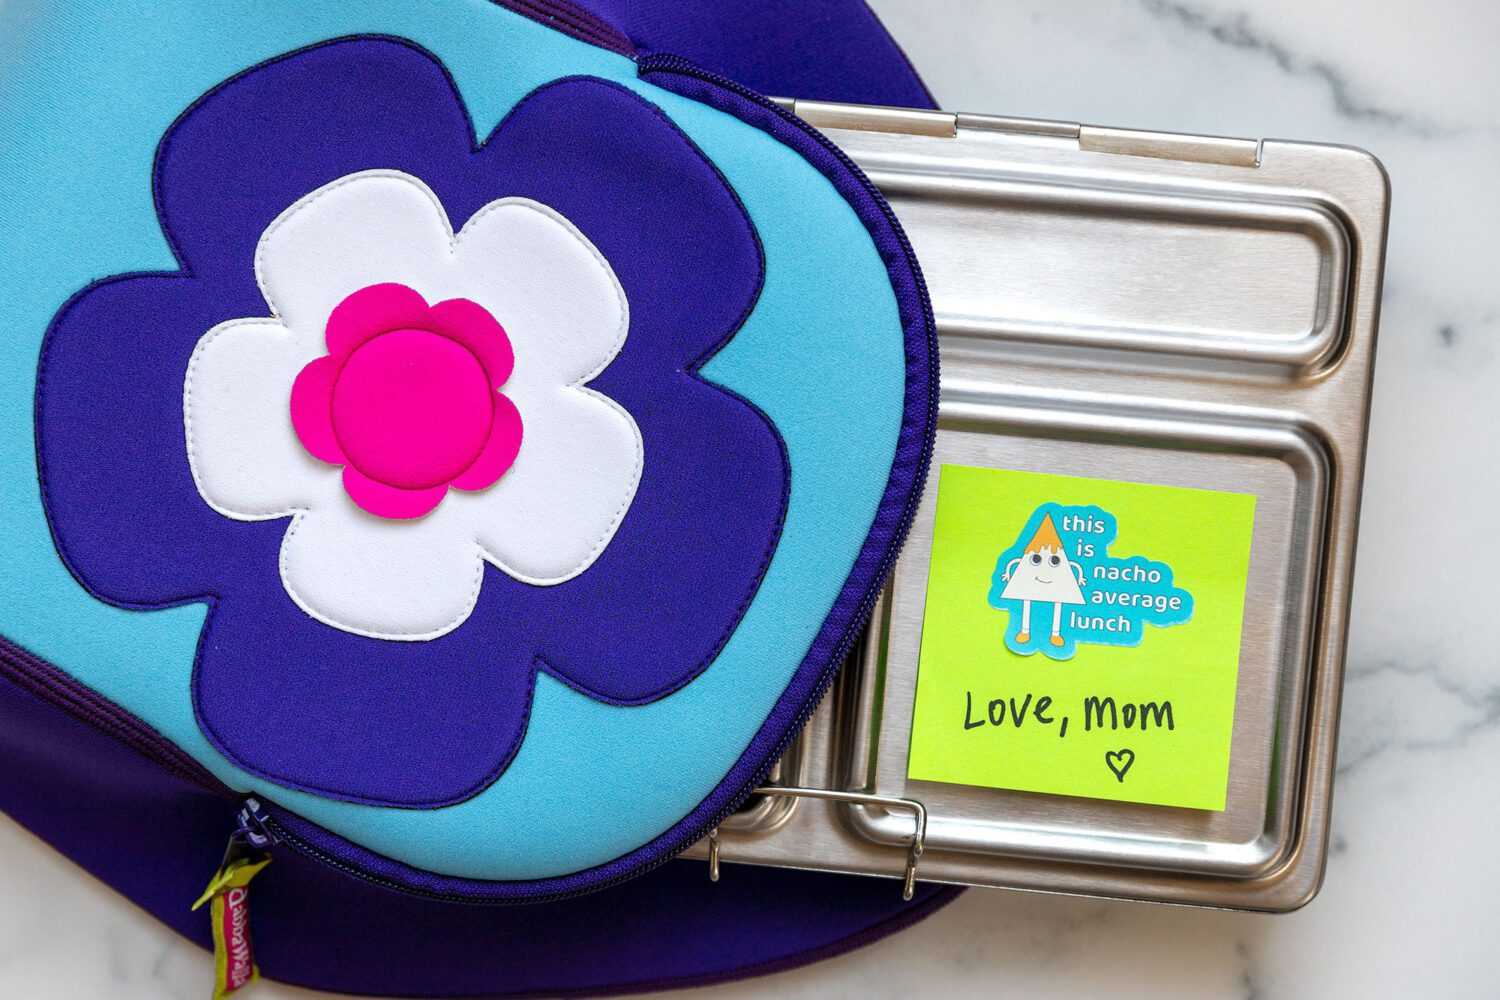 lunchbox with a note from mom and a cute sticker